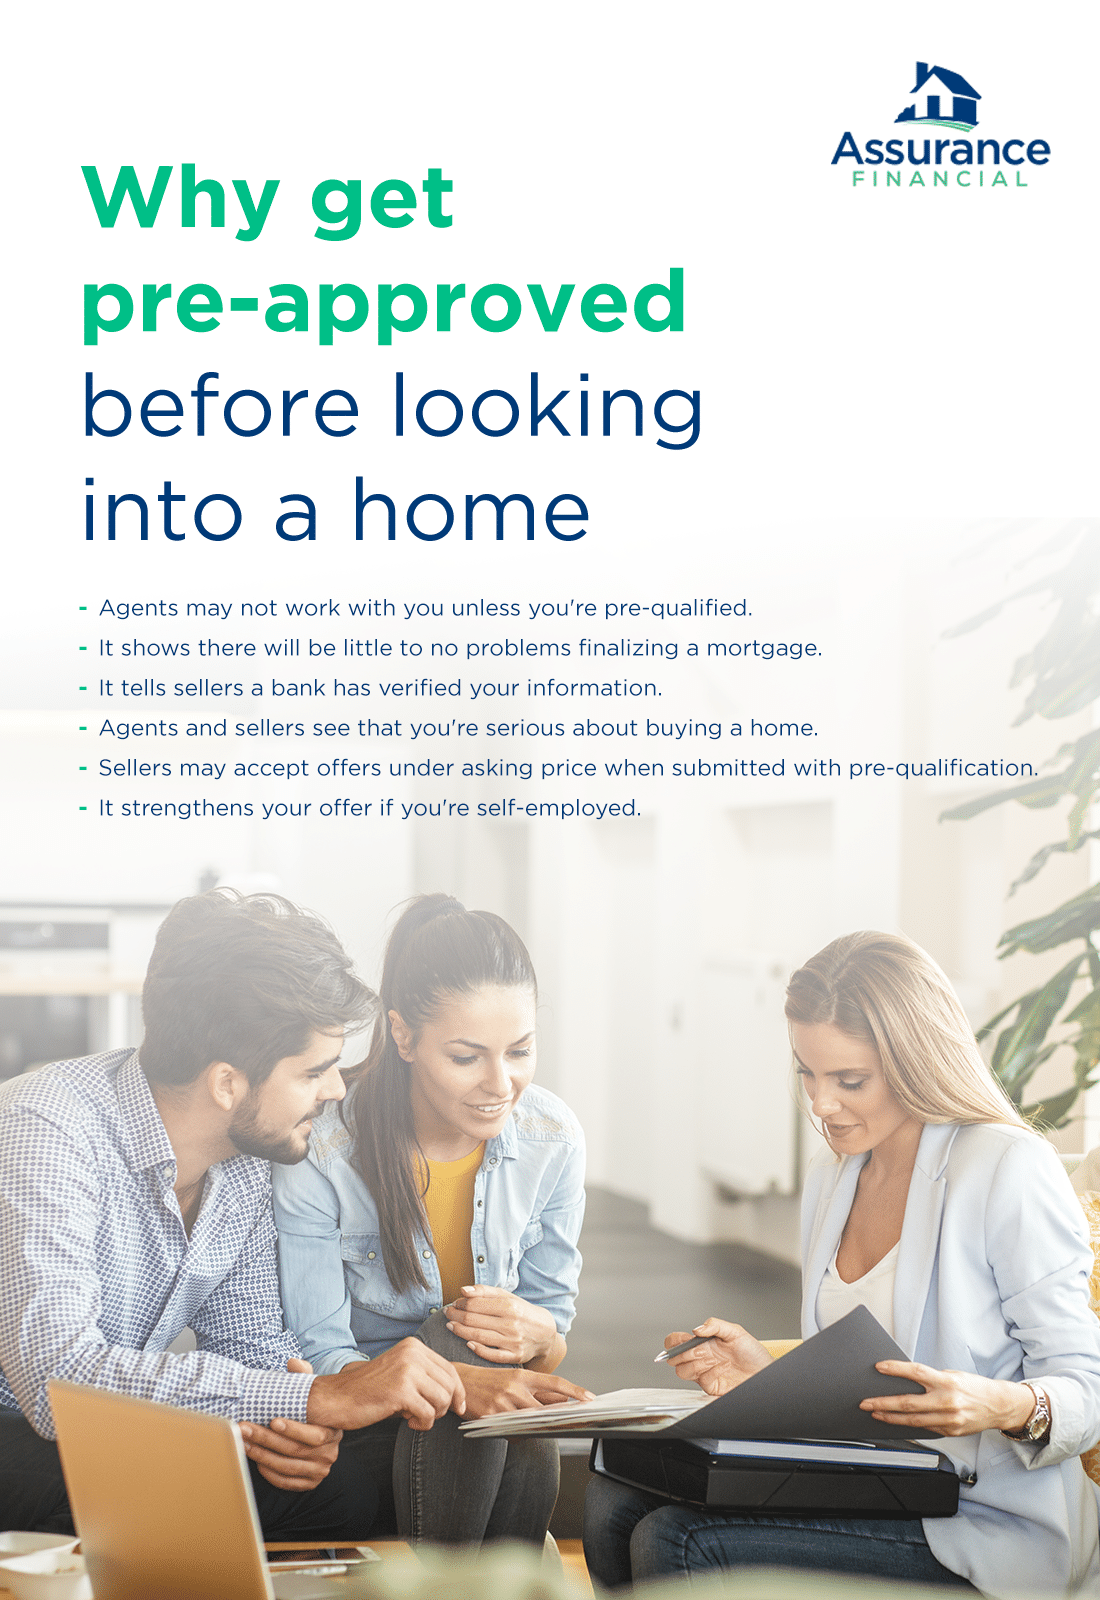 why get pre-approved before looking into a home